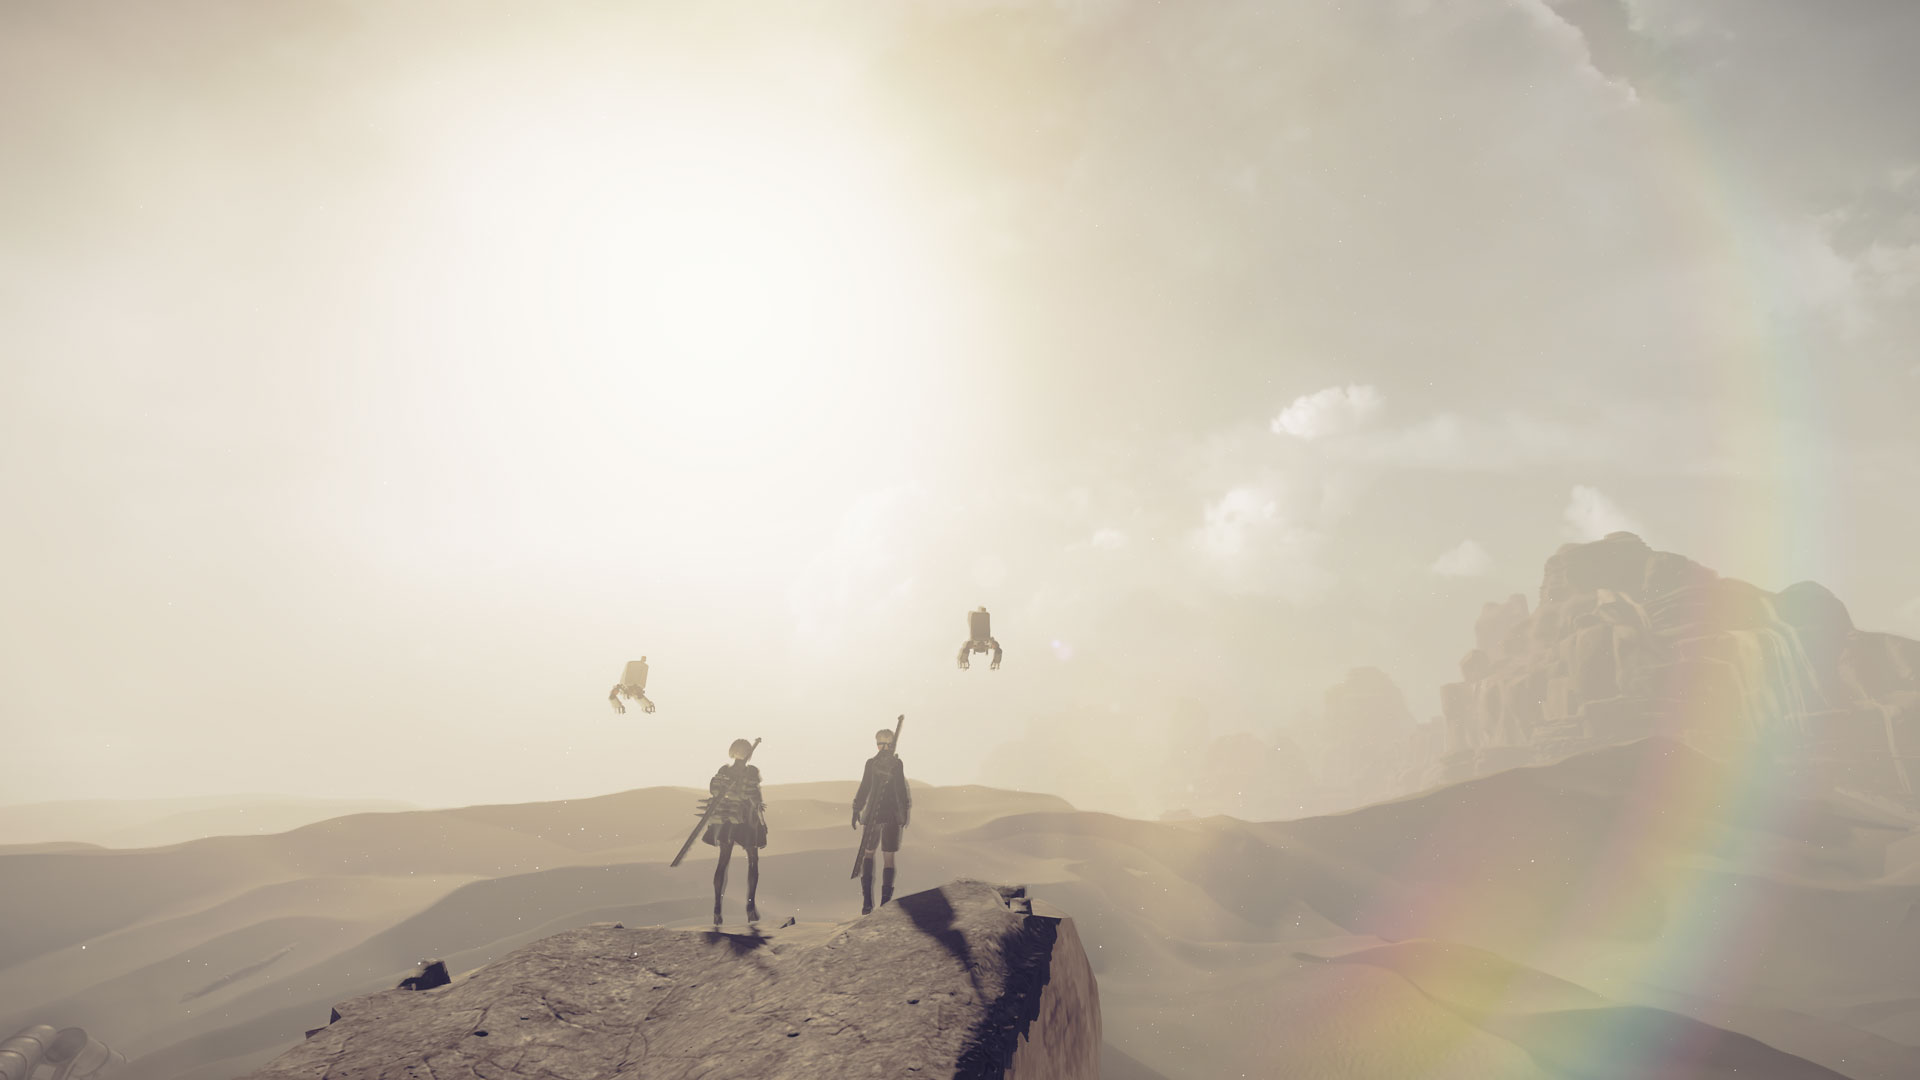 Nier_Screenshot_Online_20_Spot_in_the_desert_area_03_1486122831.02.2017